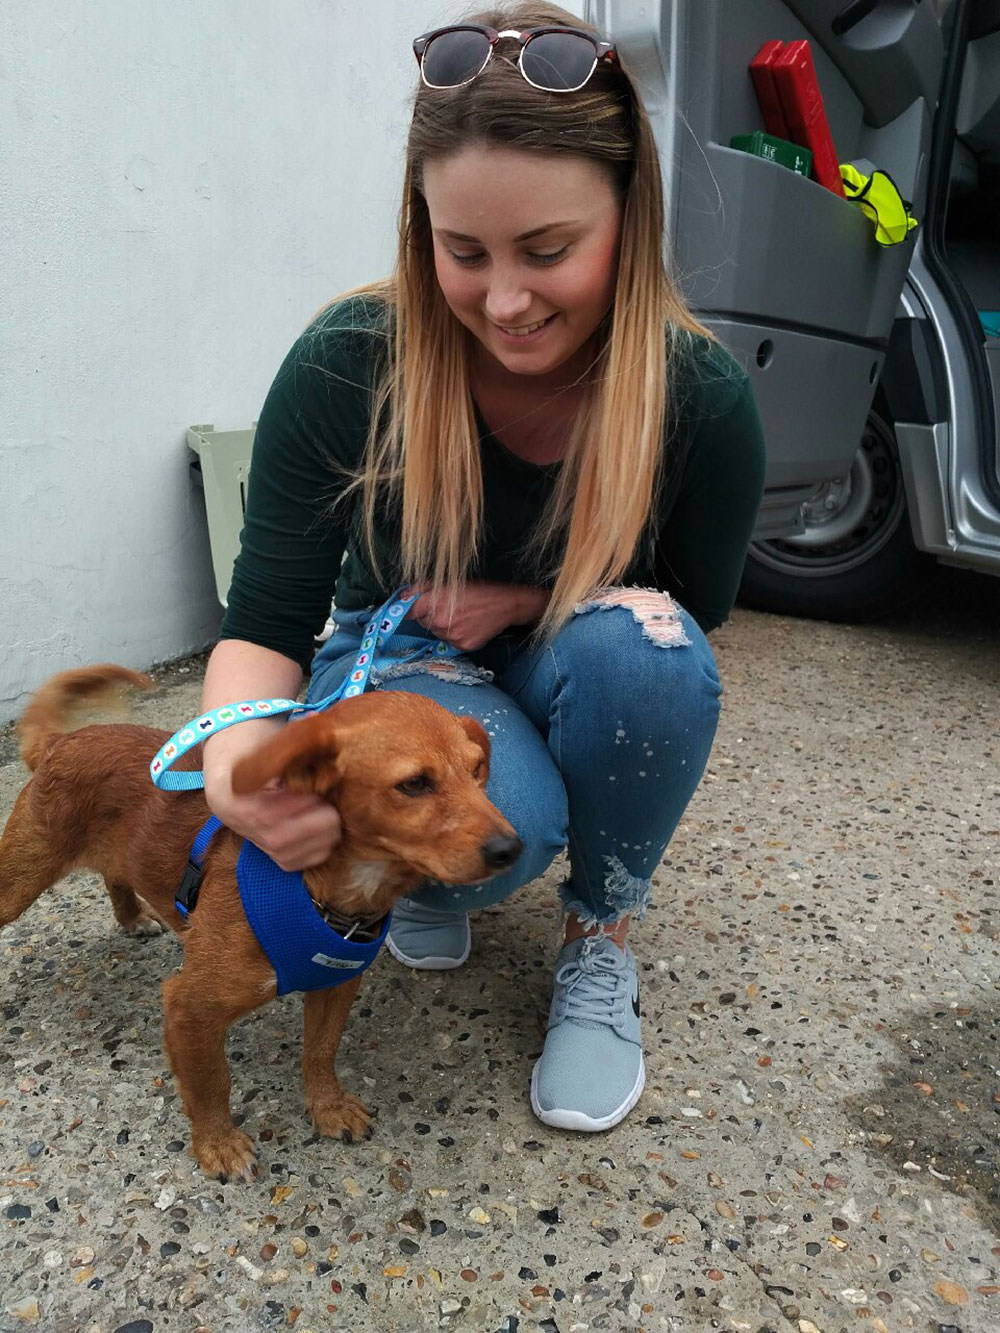 Here's clever Nelson, who attached himself to Joanne when she went on holiday to Lesvos. He's on his way to a new life with her in Ipswich